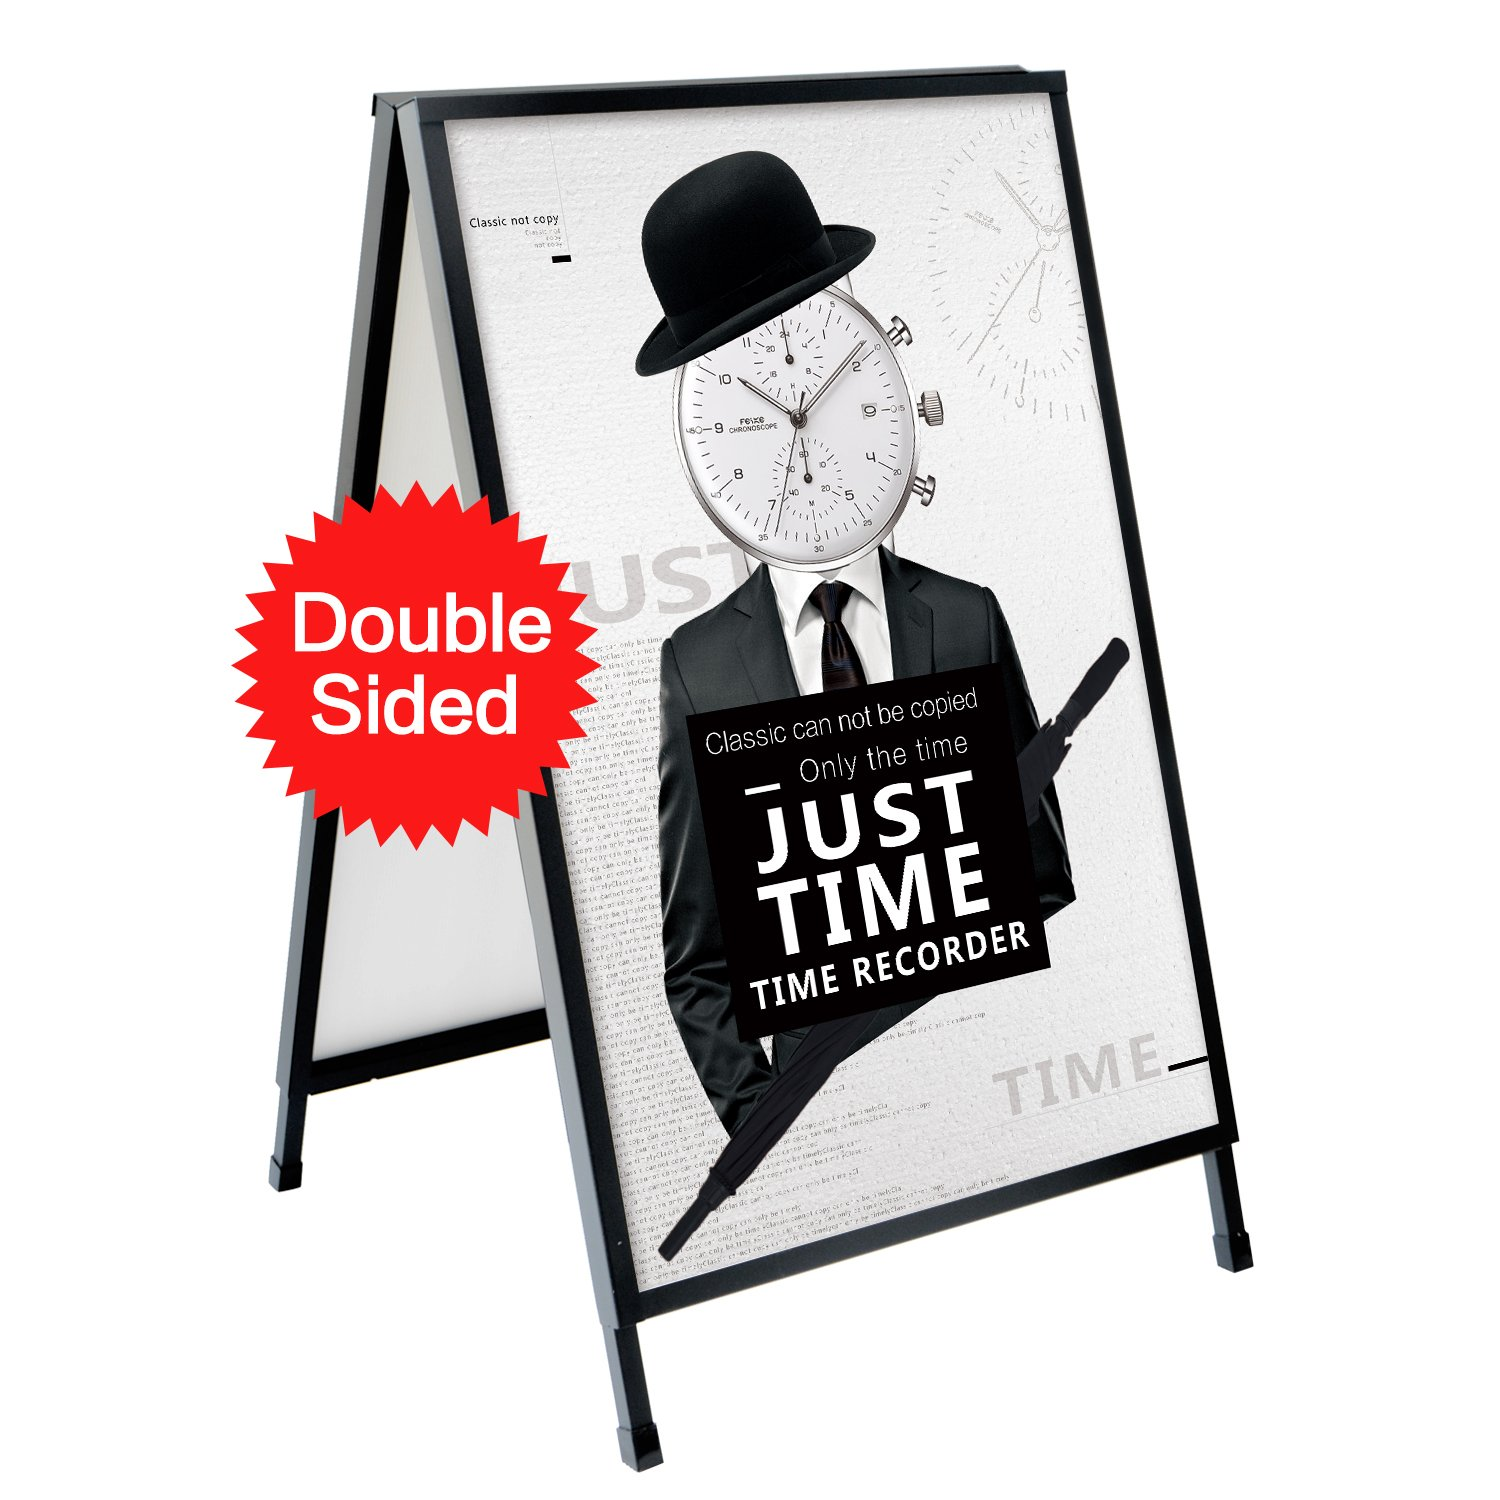 T-SIGN Heavy Duty Slide-in Folding A-Frame Sidewalk Sign 24 x 36 Inch Black Coated Steel Metal Double-Sided, 2 Corrugated Plastic Poster Boards by T-SIGN